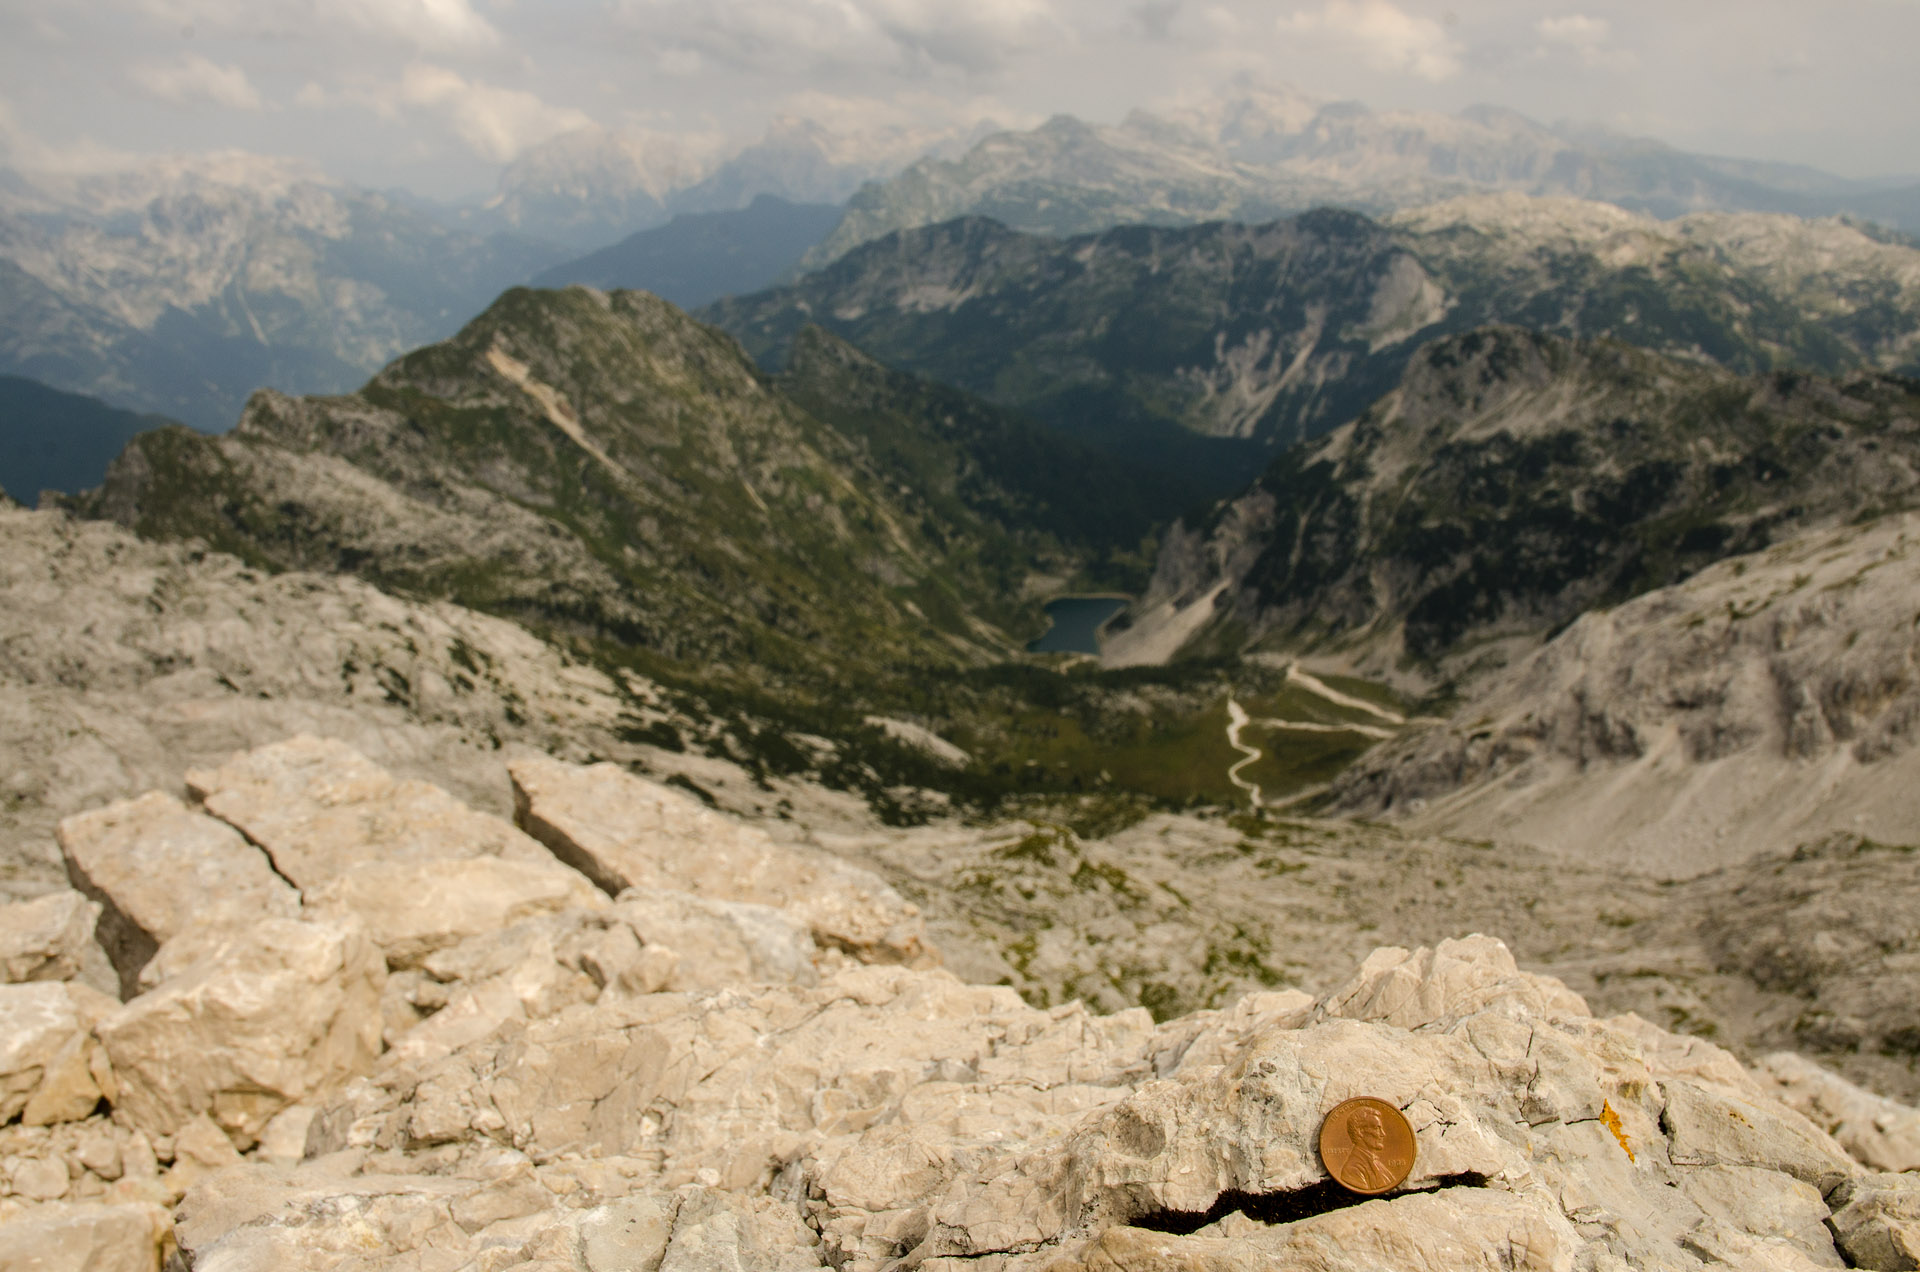 Krn summit (Triglav National Park)